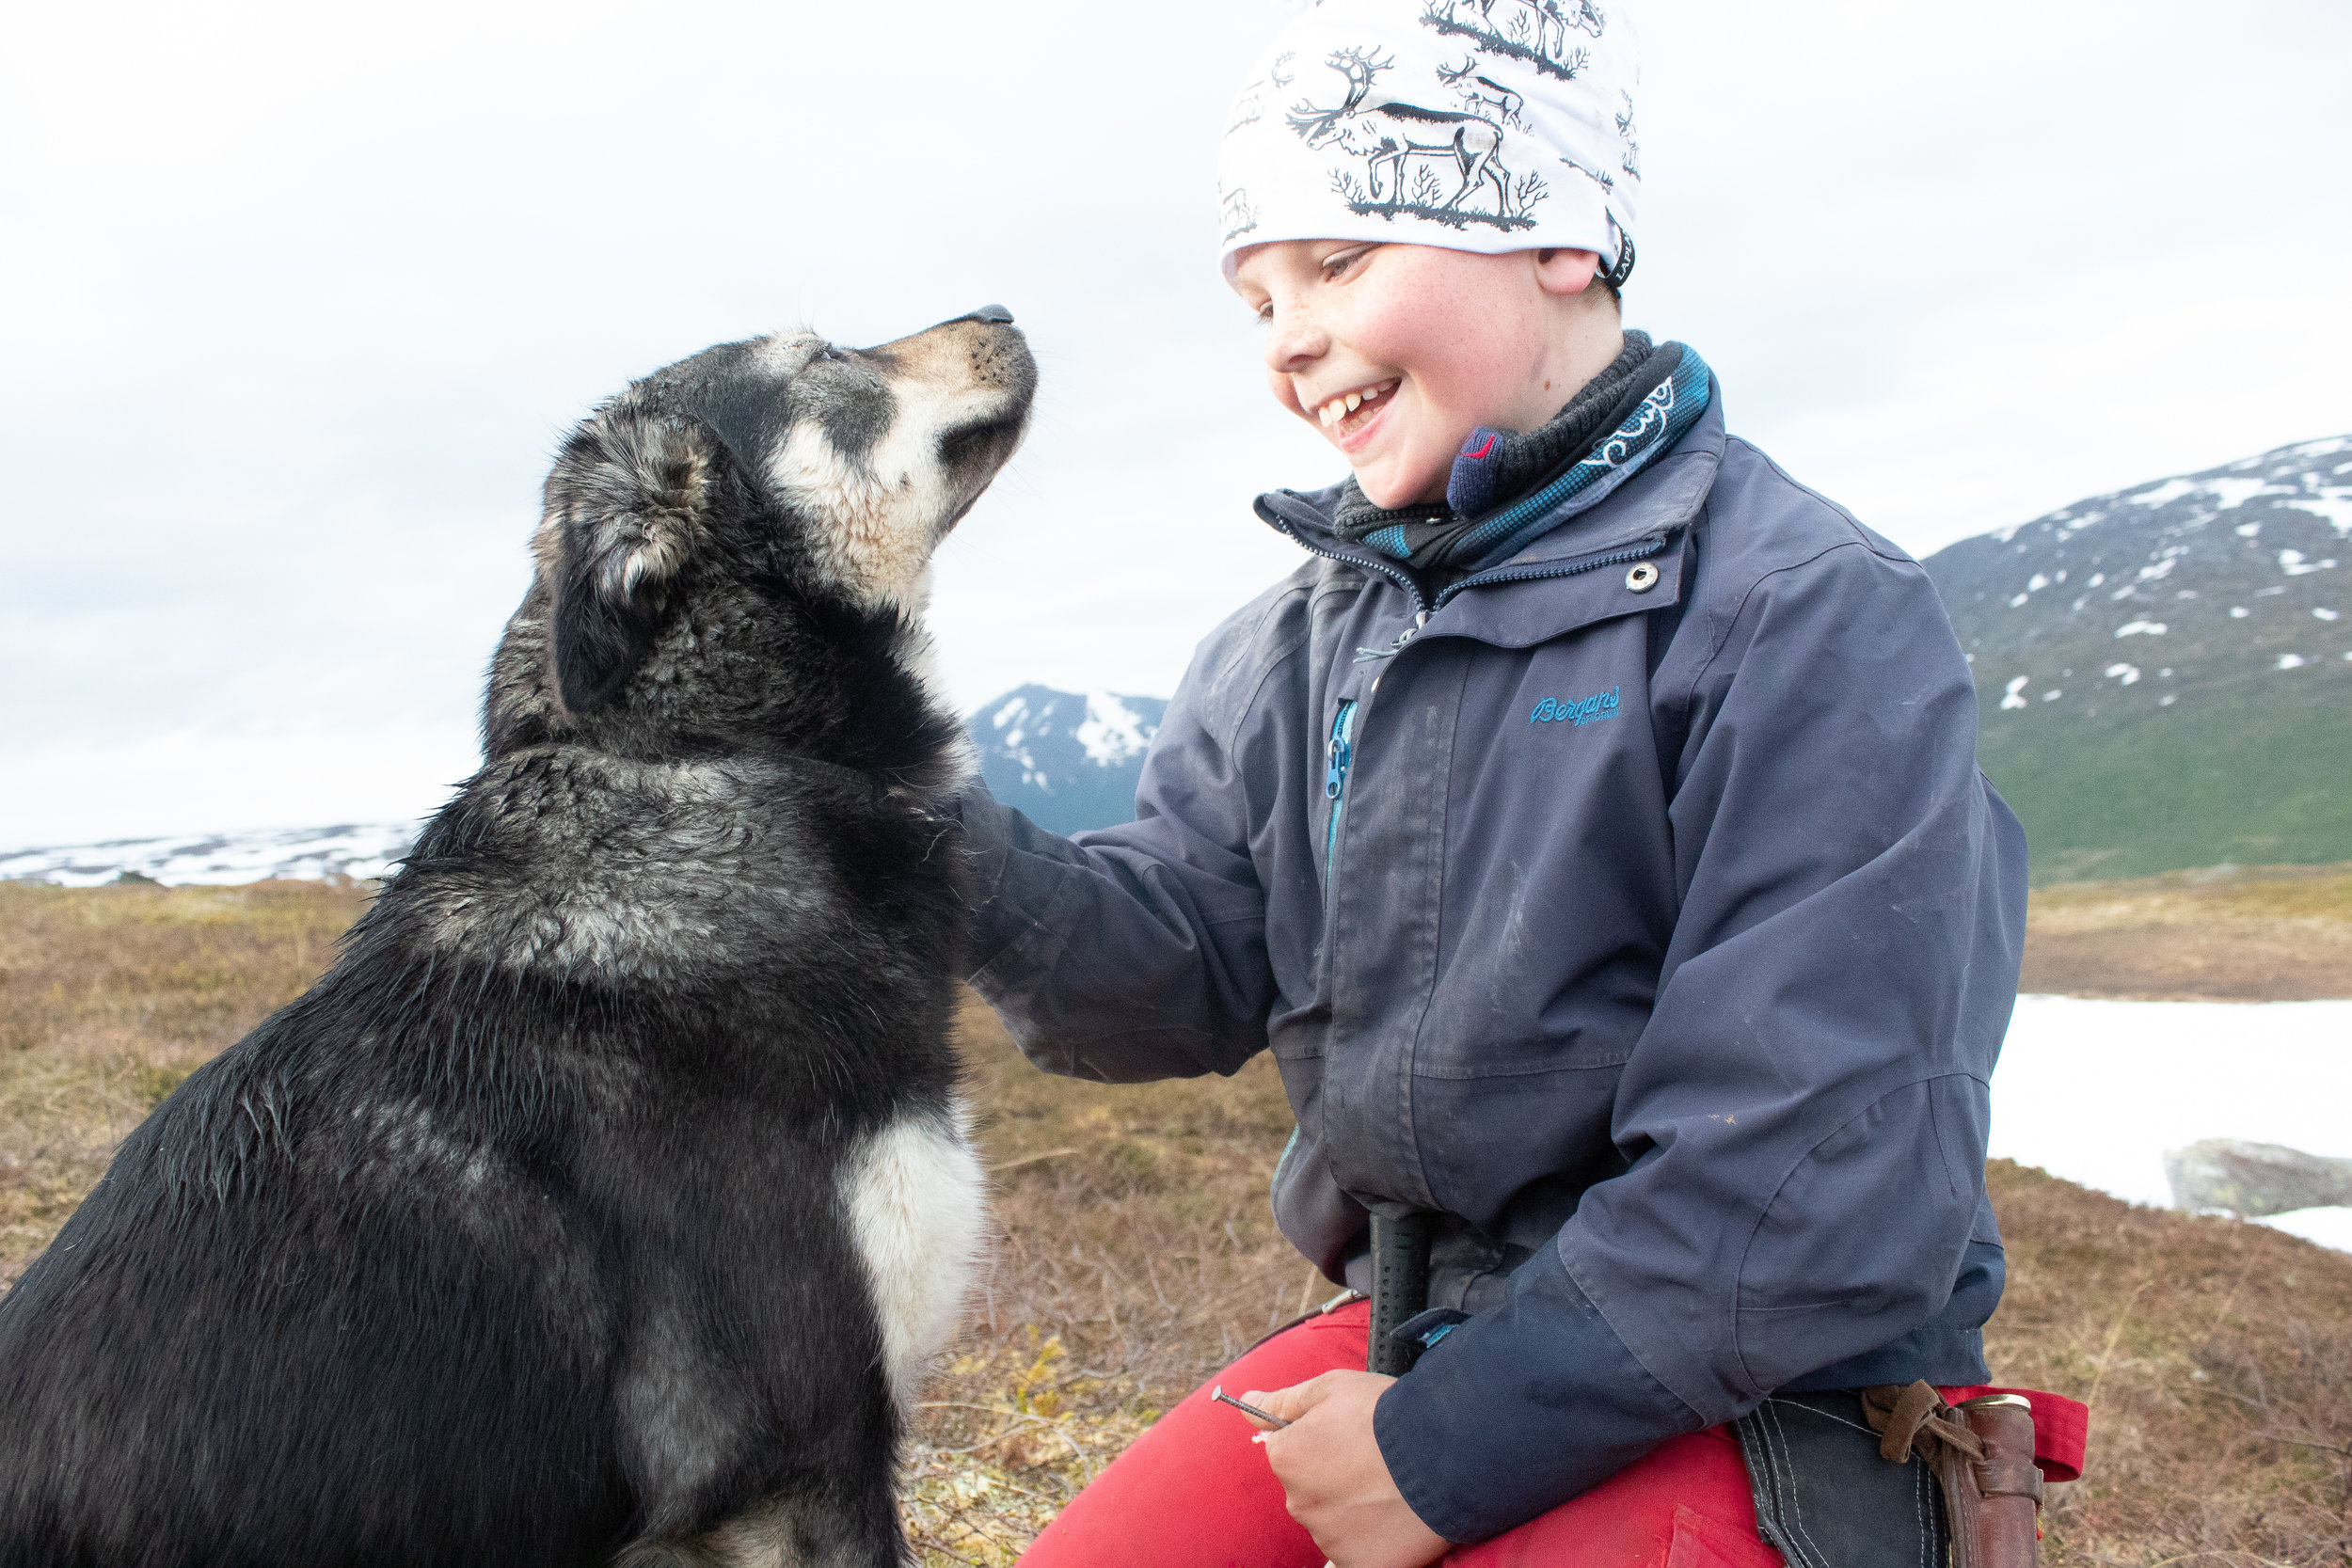 Ulf Isak Aleksandersen is 10 years old, and speaks three languages: Norwegian, Sámi and English.